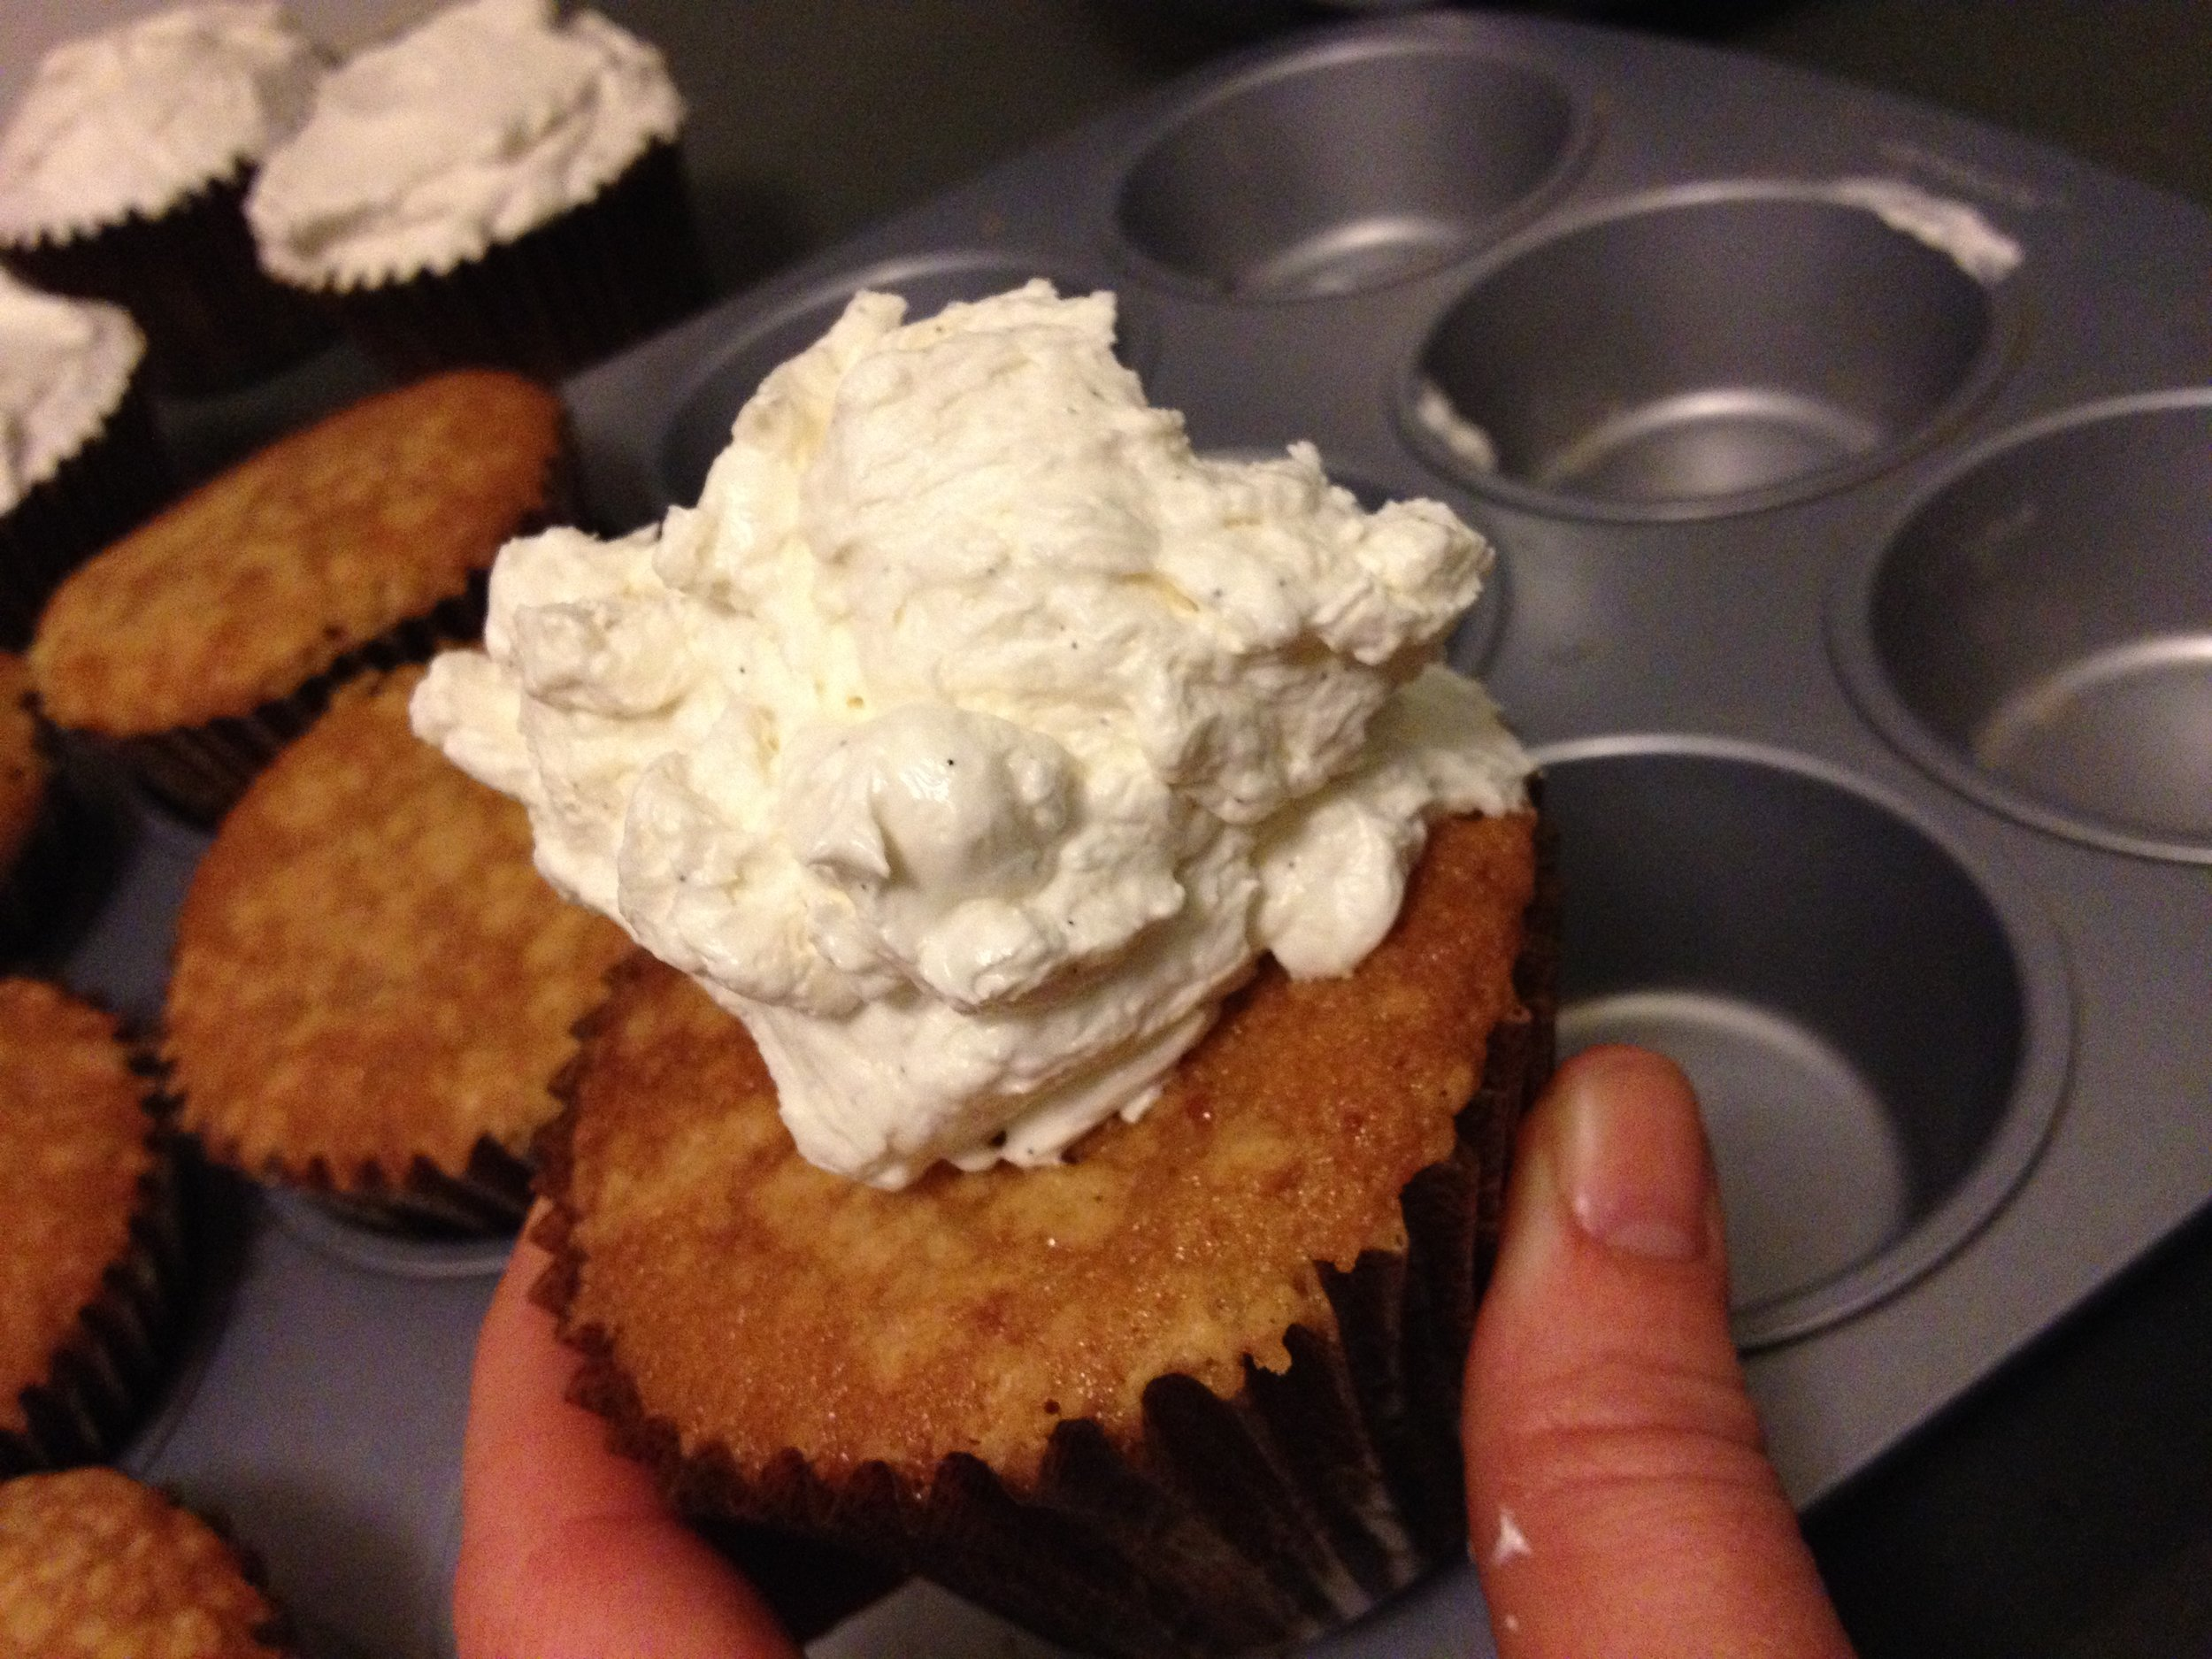 Silky Italian Buttercream flavored with Vanilla Beans is perfect for  these Almond Cupcakes.